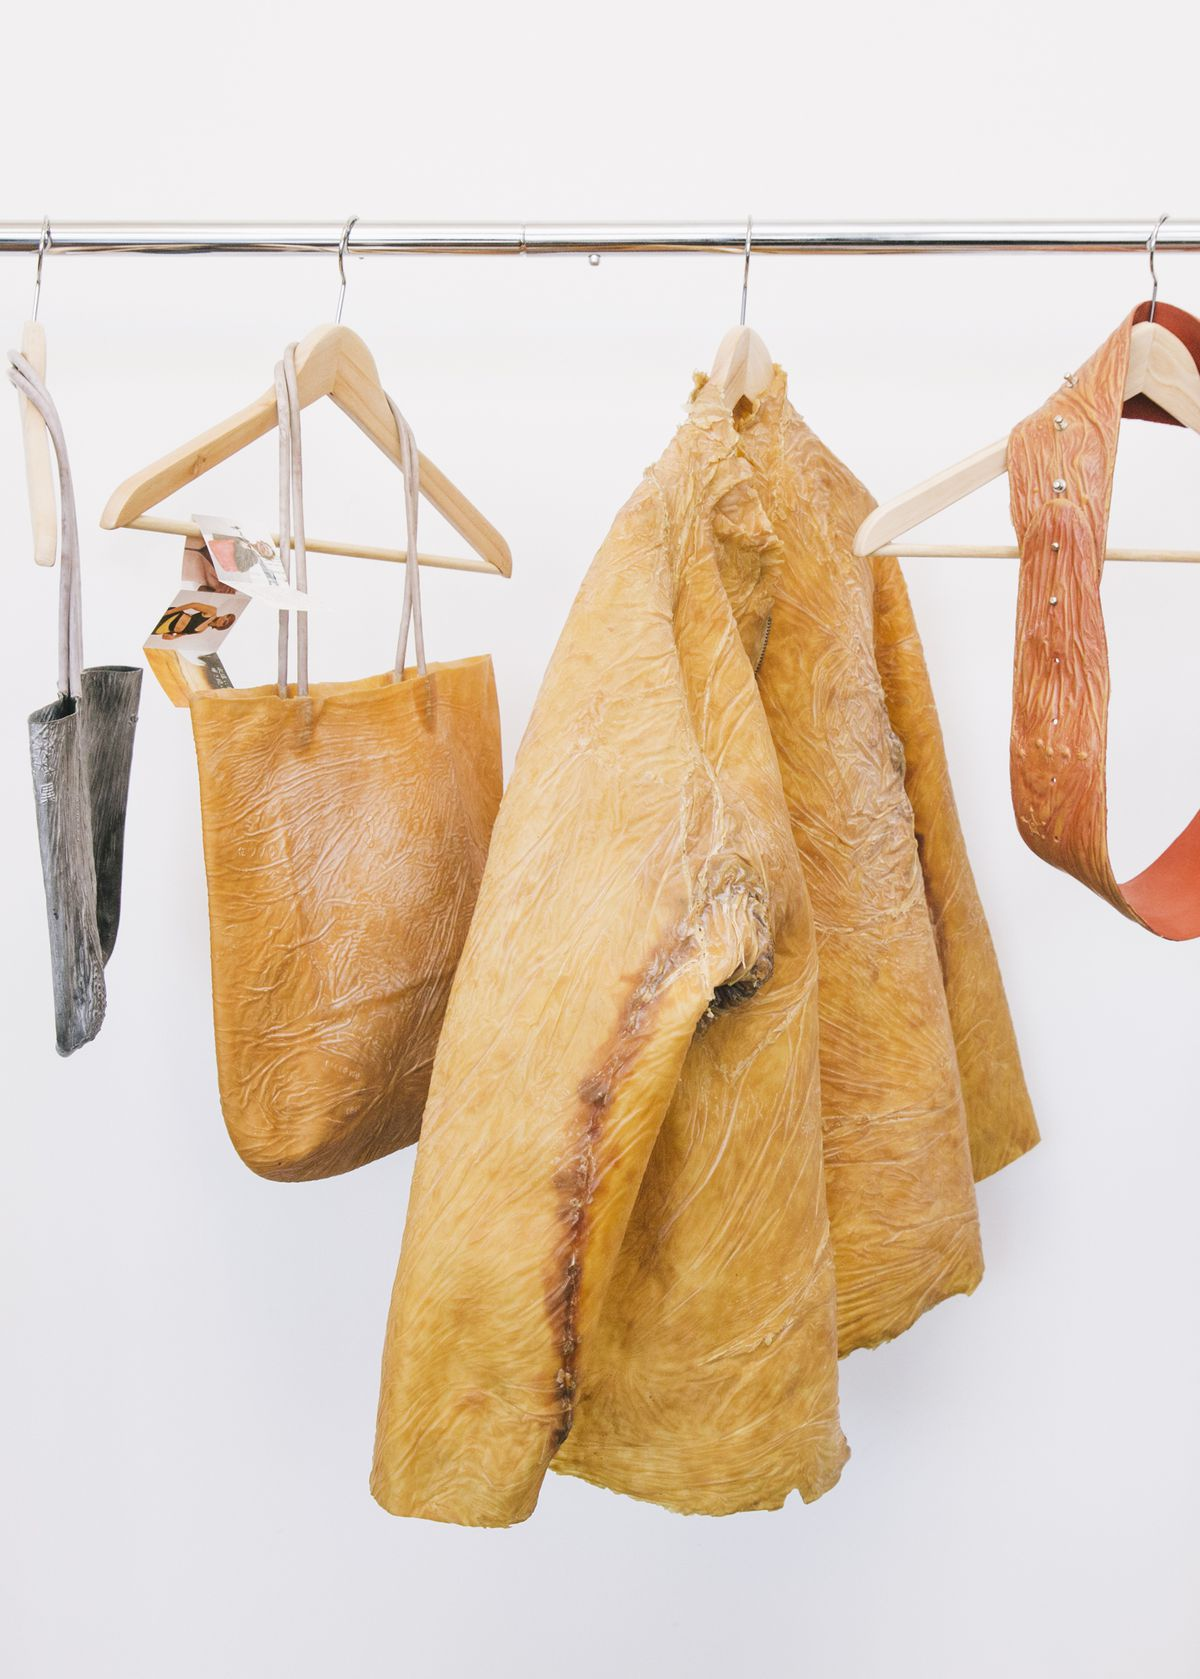 A coat, a bag, and a belt hanging on hangers. The materials look like flesh.